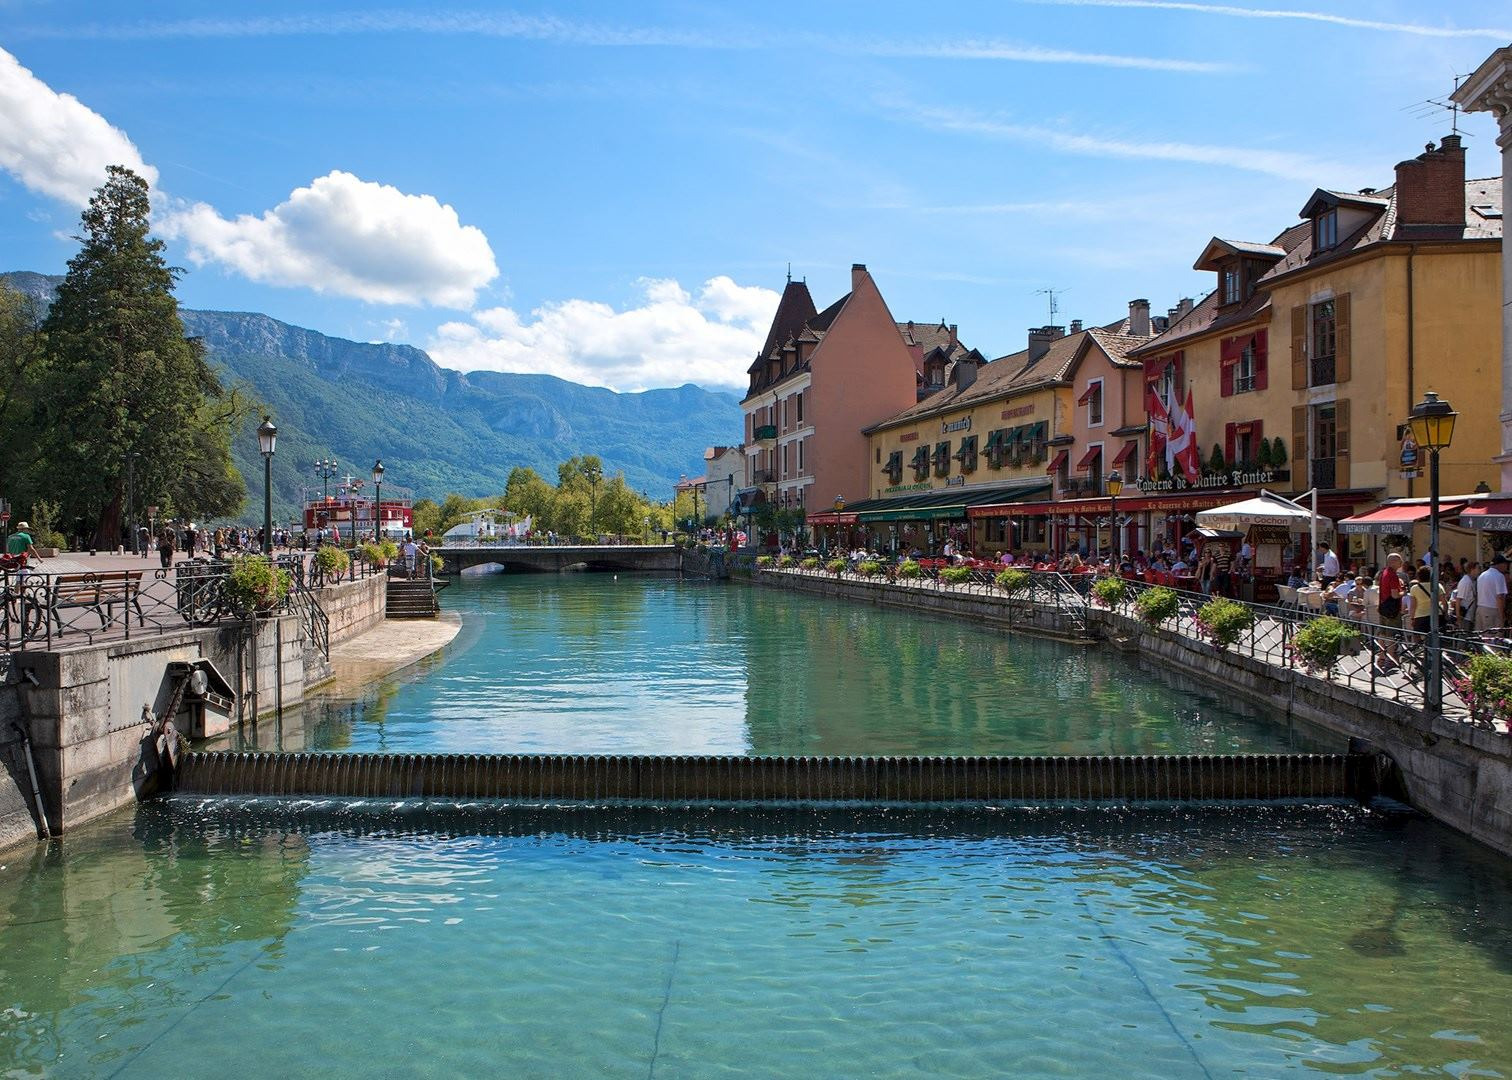 15 Best Things to Do in Annecy (France) - The Crazy Tourist |Annecy France Attractions